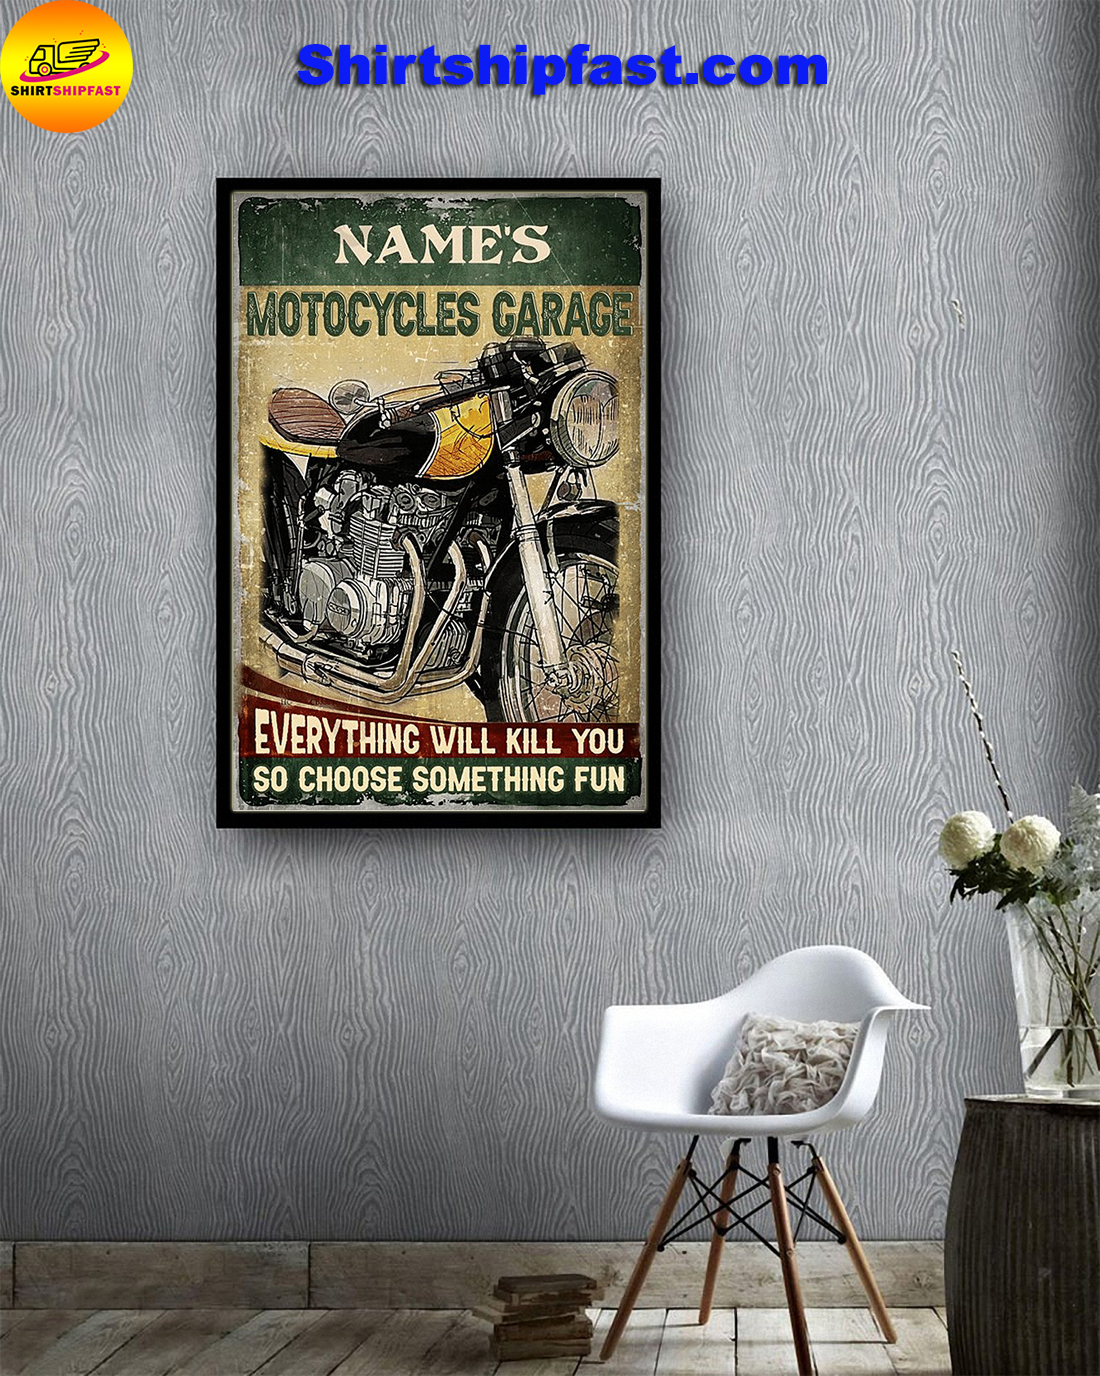 Personalized Motocycles garare everything will kill you so choose something fun poster - Picture 3